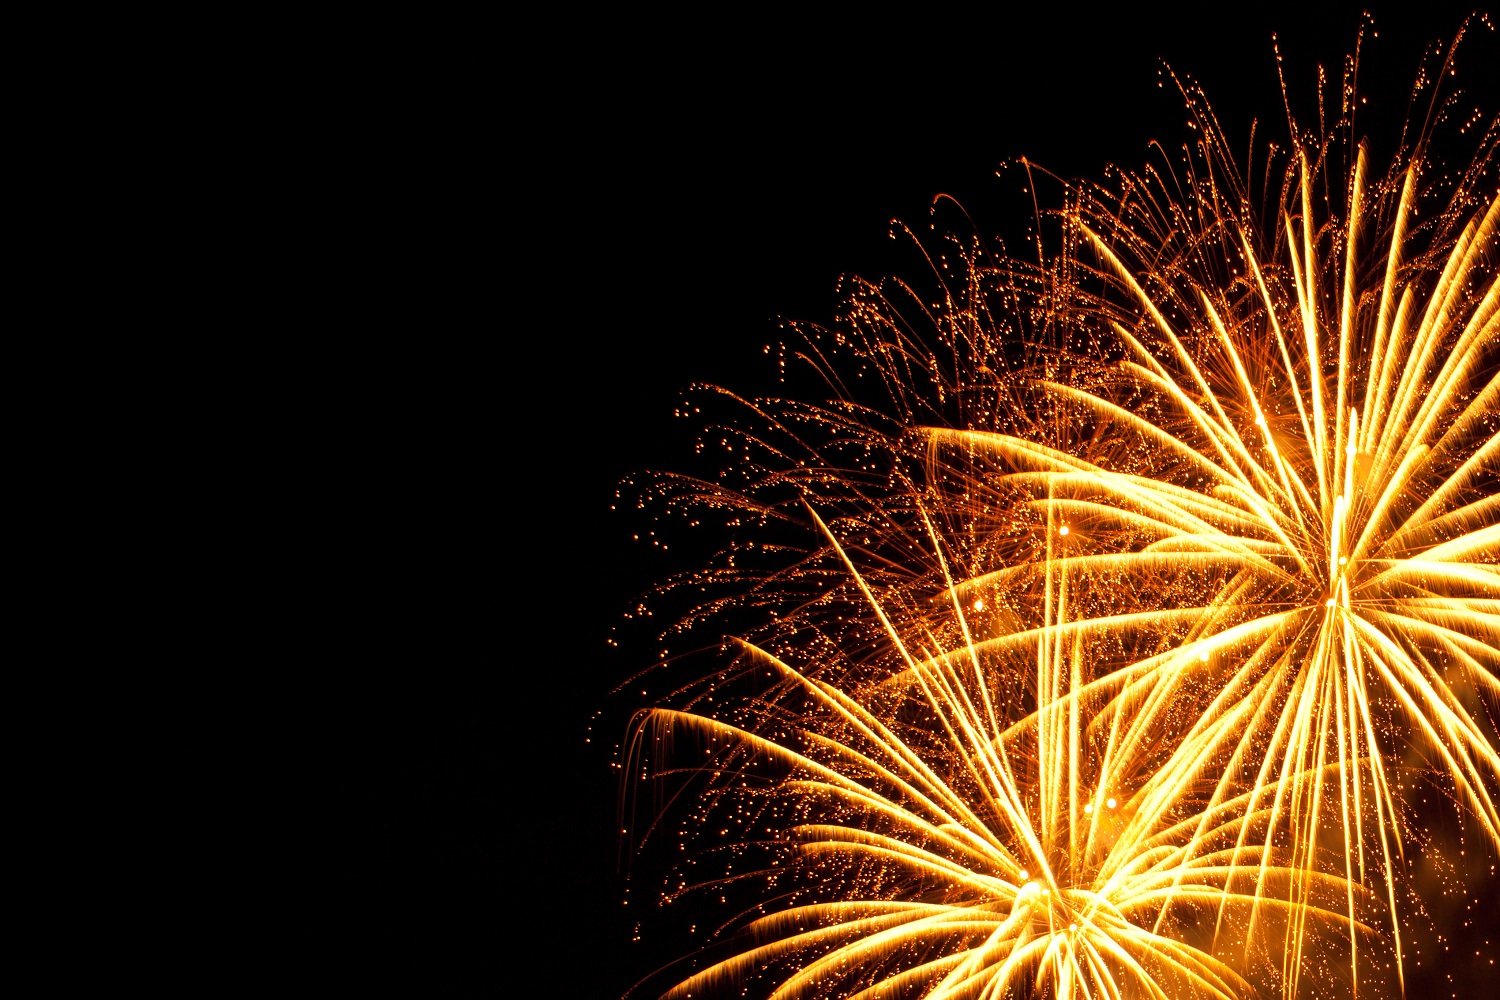 fireworks-display-diwali-new-year-bonfire-night